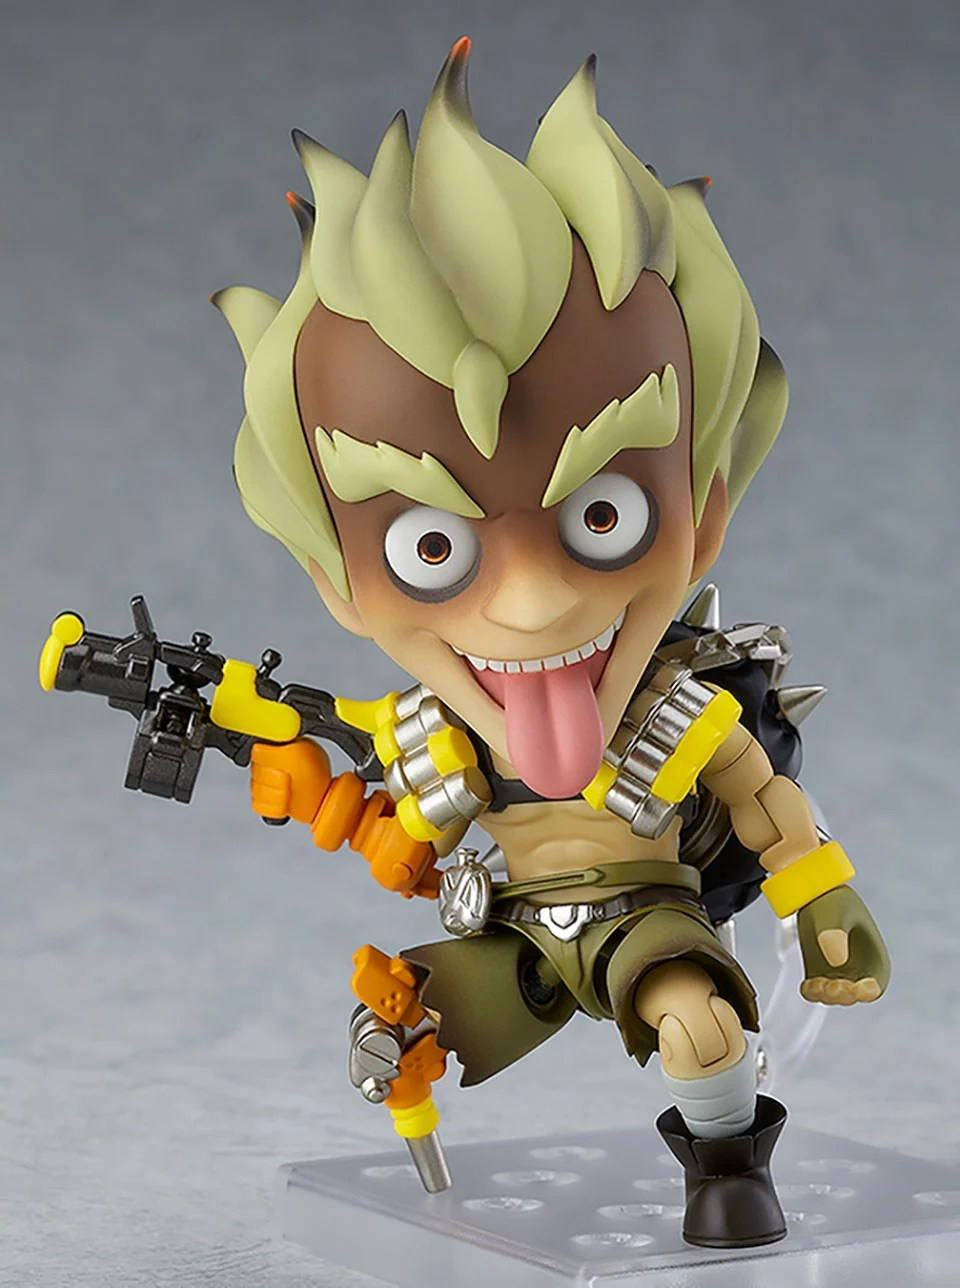 The Nendoroid Junkrat Action Figure Look As Crazy As Youd Expect